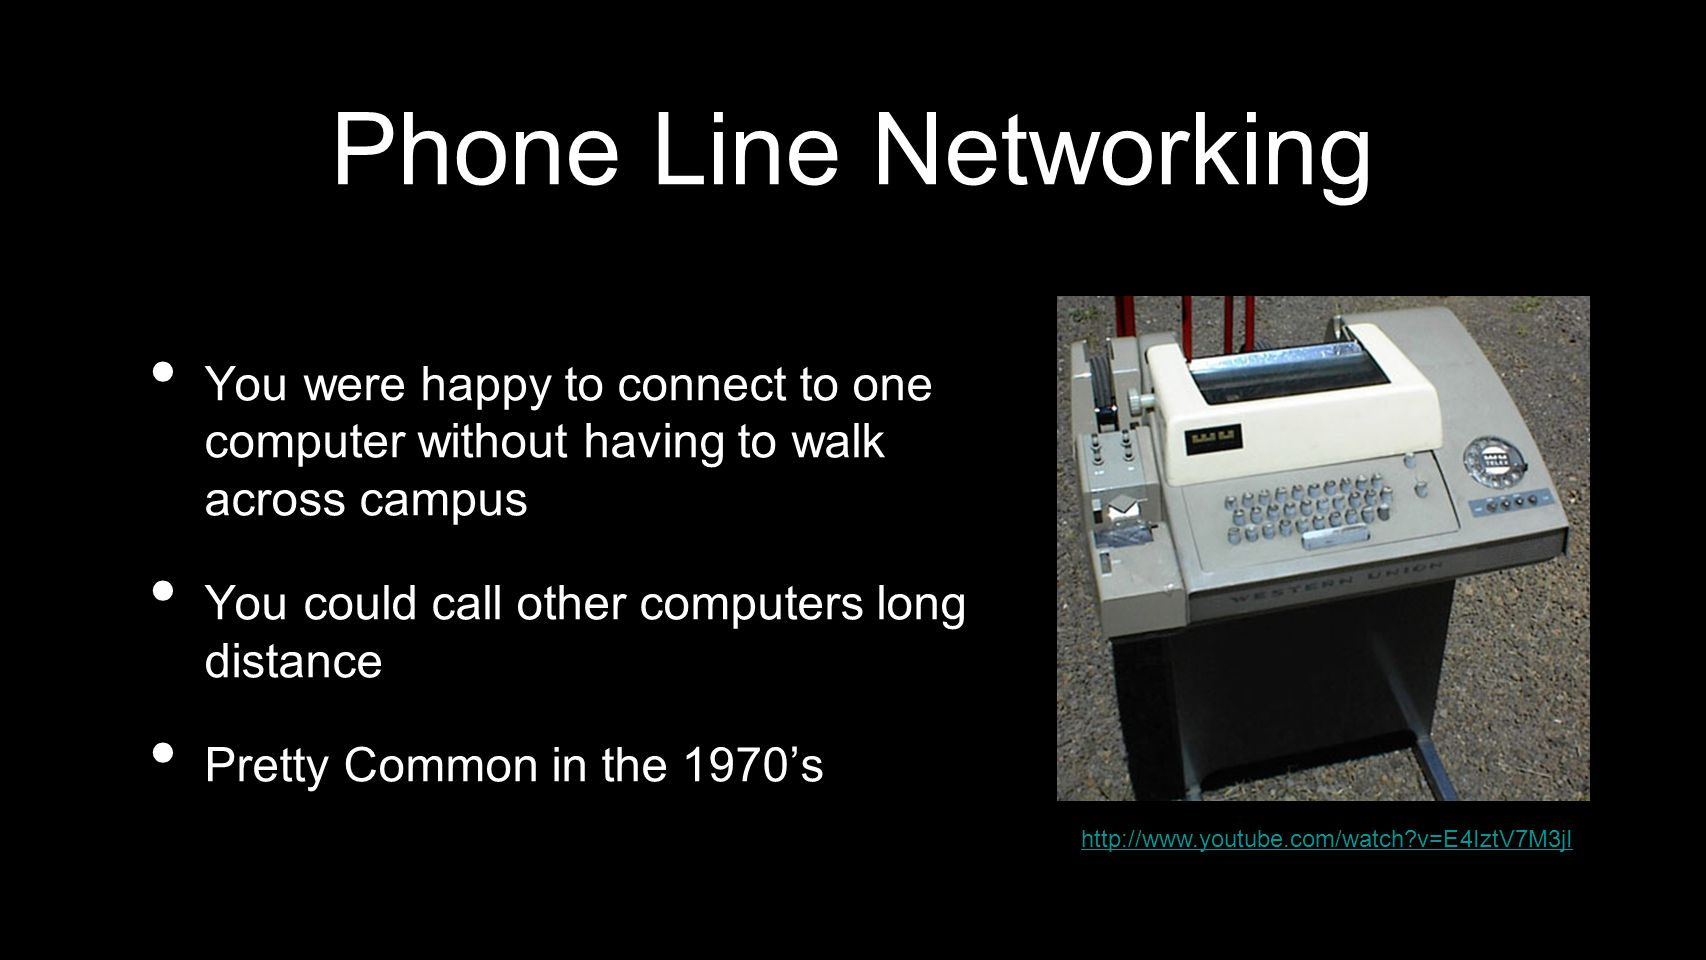 Phone Line Networking You were happy to connect to one computer without having to walk across campus.